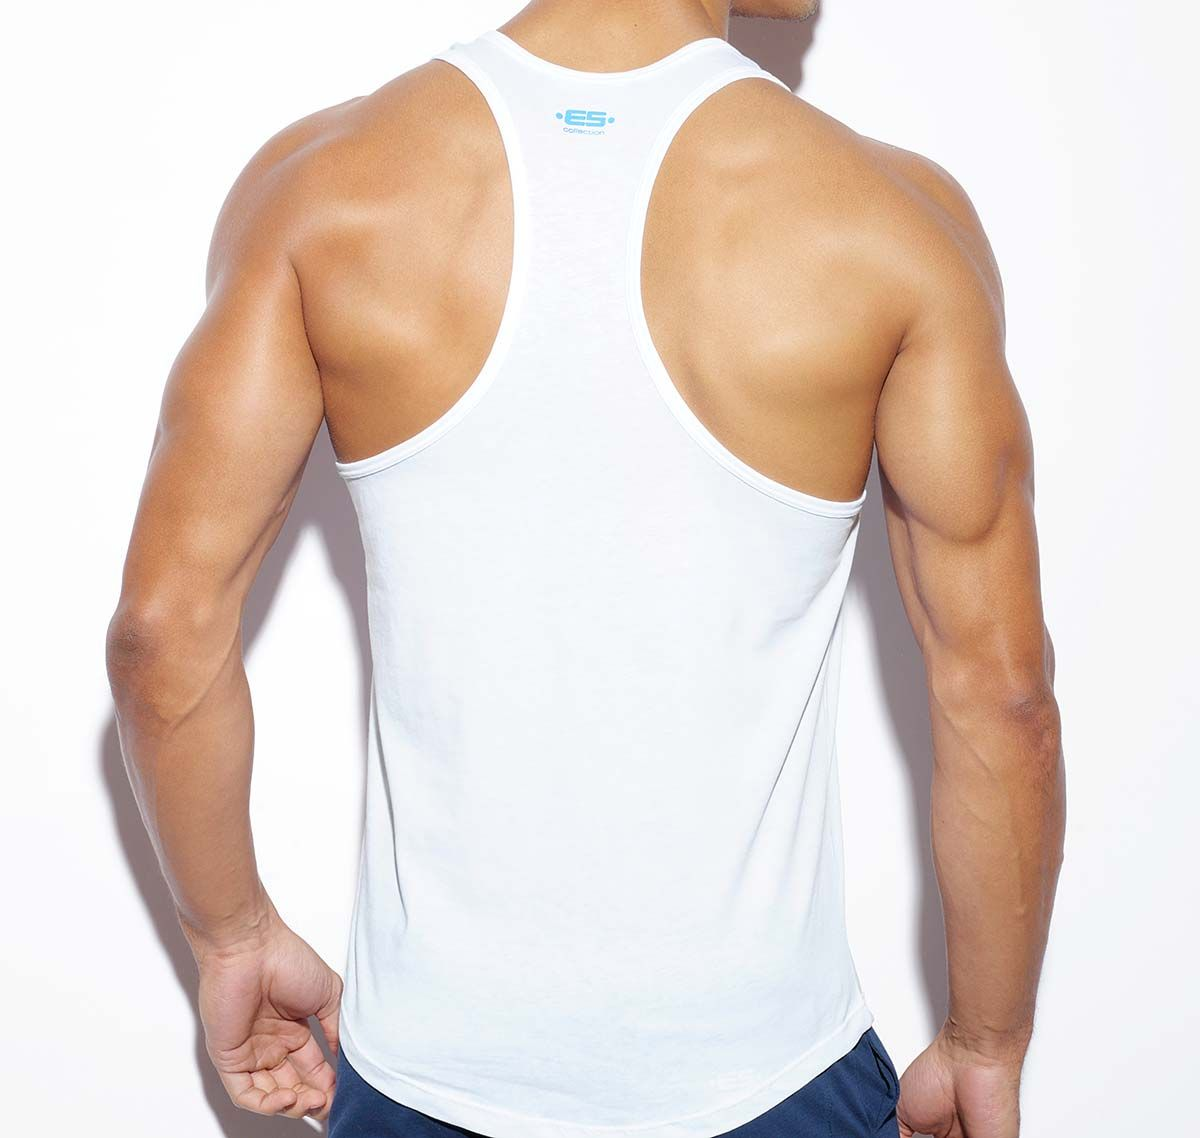 ES Collection NEVER BACK DOWN BADGE TANK TOP TS170, weiss